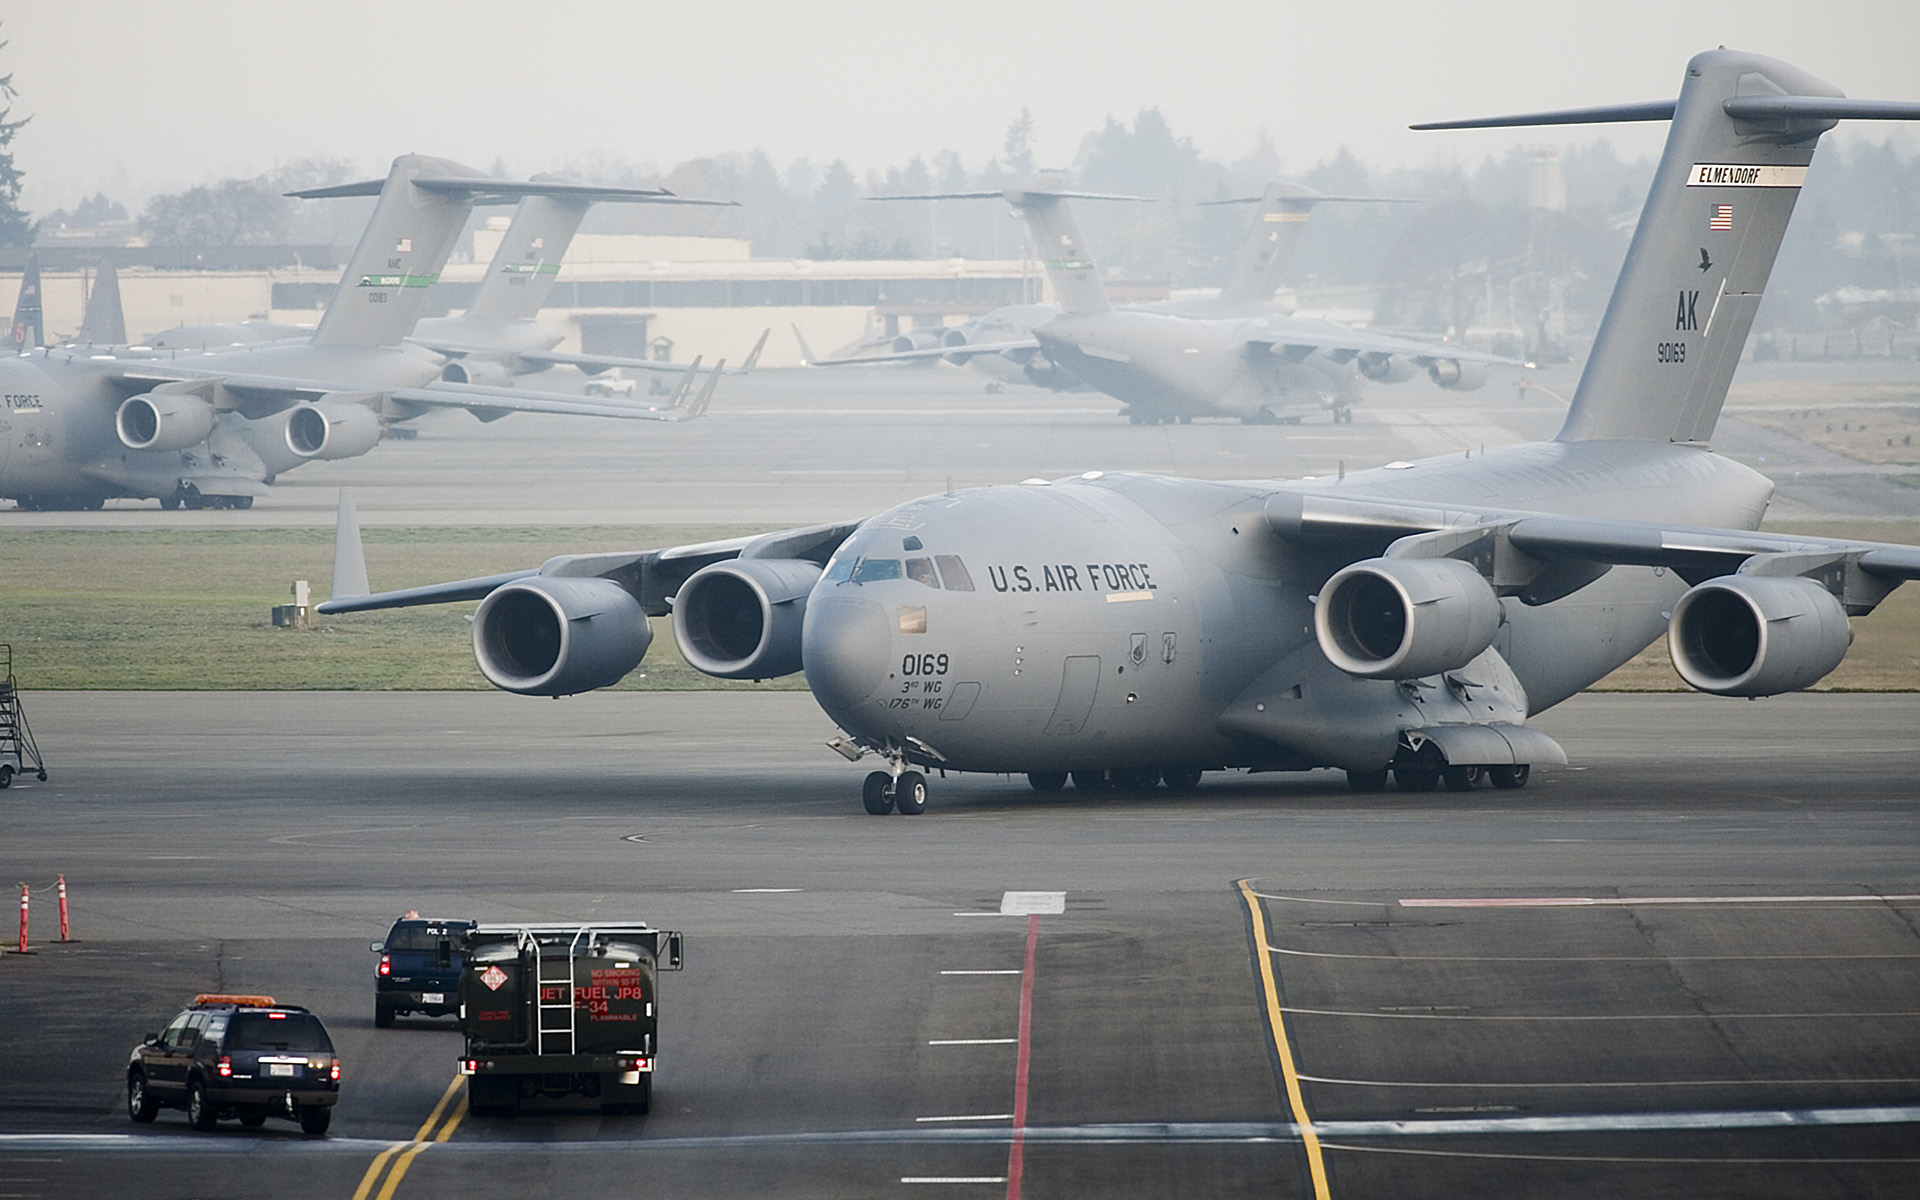 McChord receives Alaska-based Airmen, aircraft as precaution to volcano